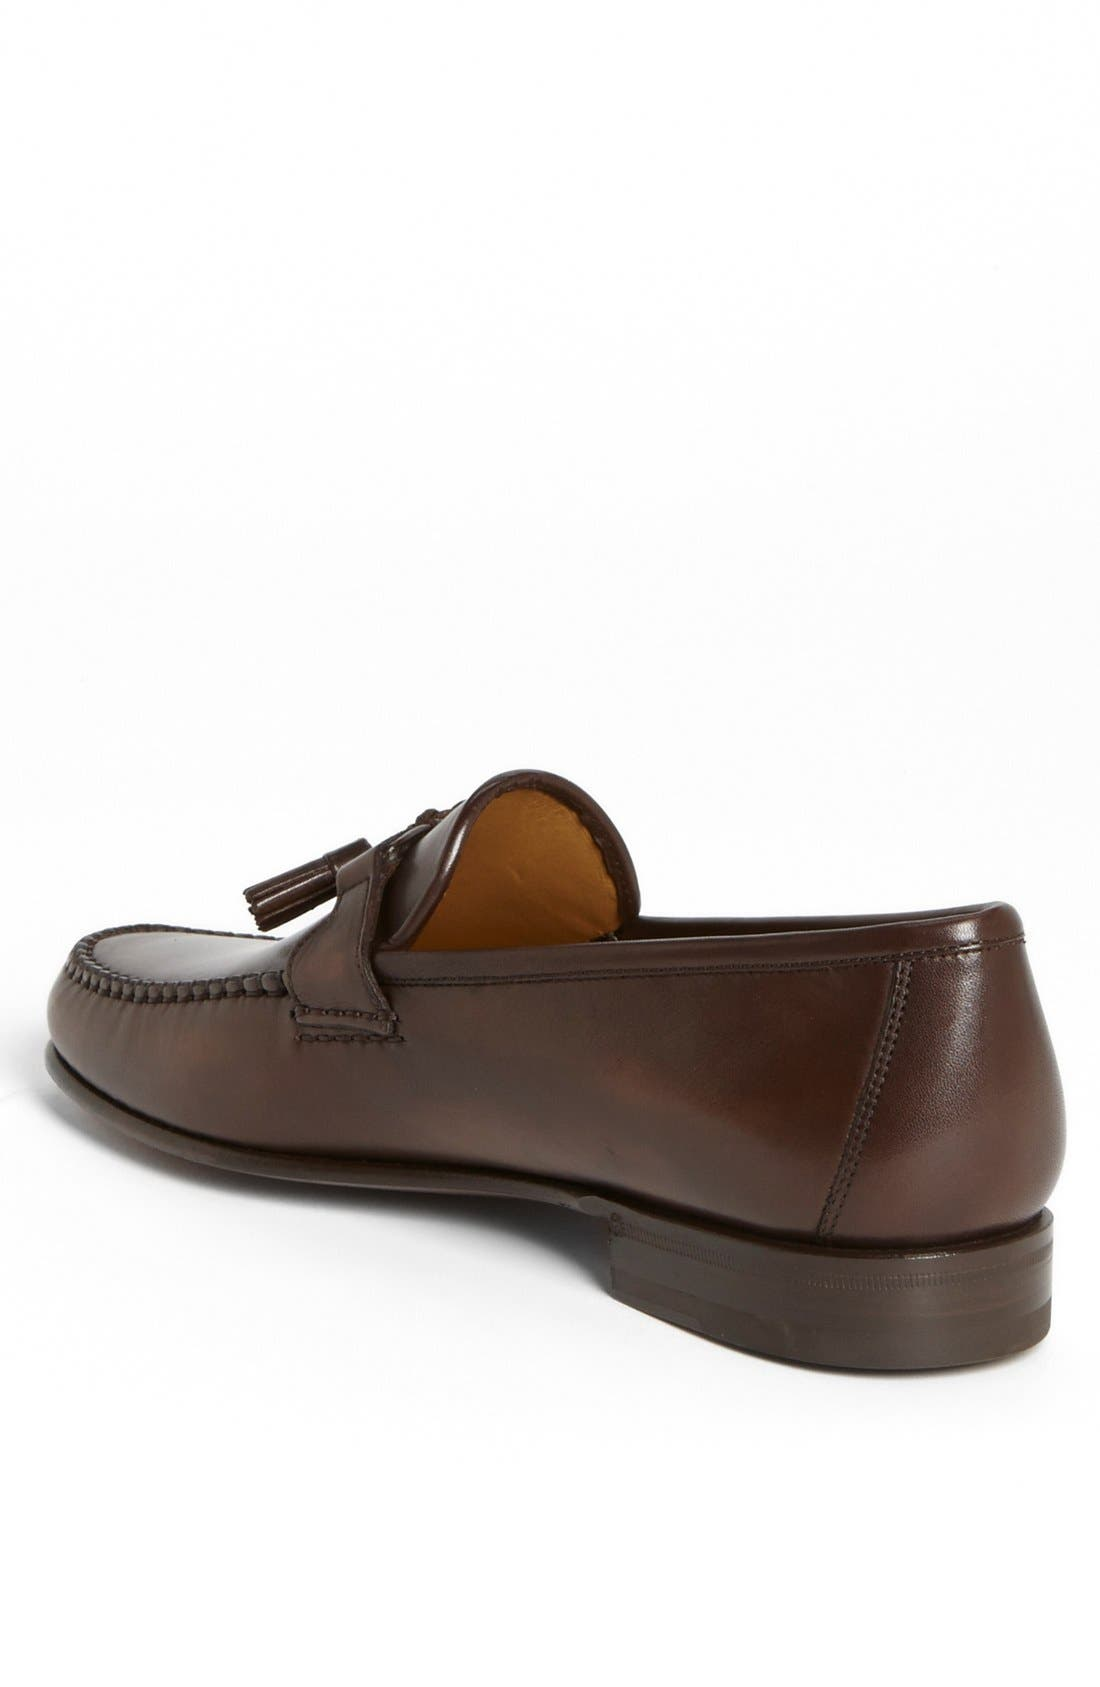 Alternate Image 2  - Allen Edmonds 'Urbino' Tassel Loafer (Men)